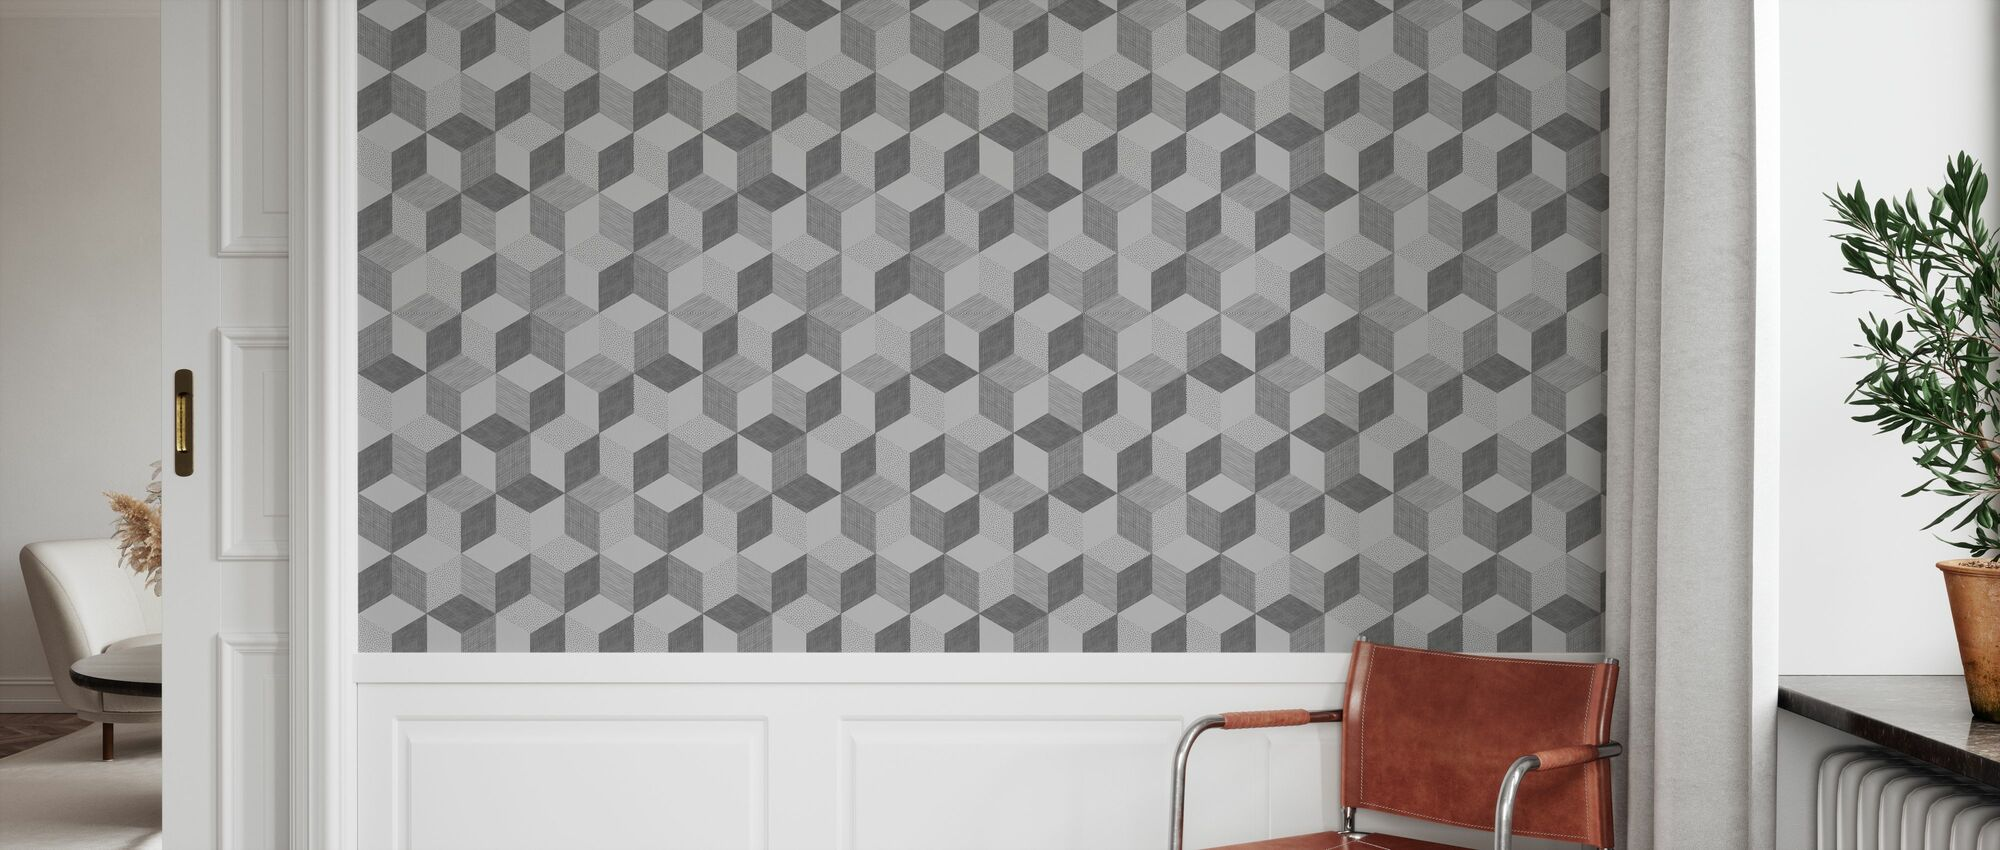 Hexagon Concrete - Wallpaper - Hallway